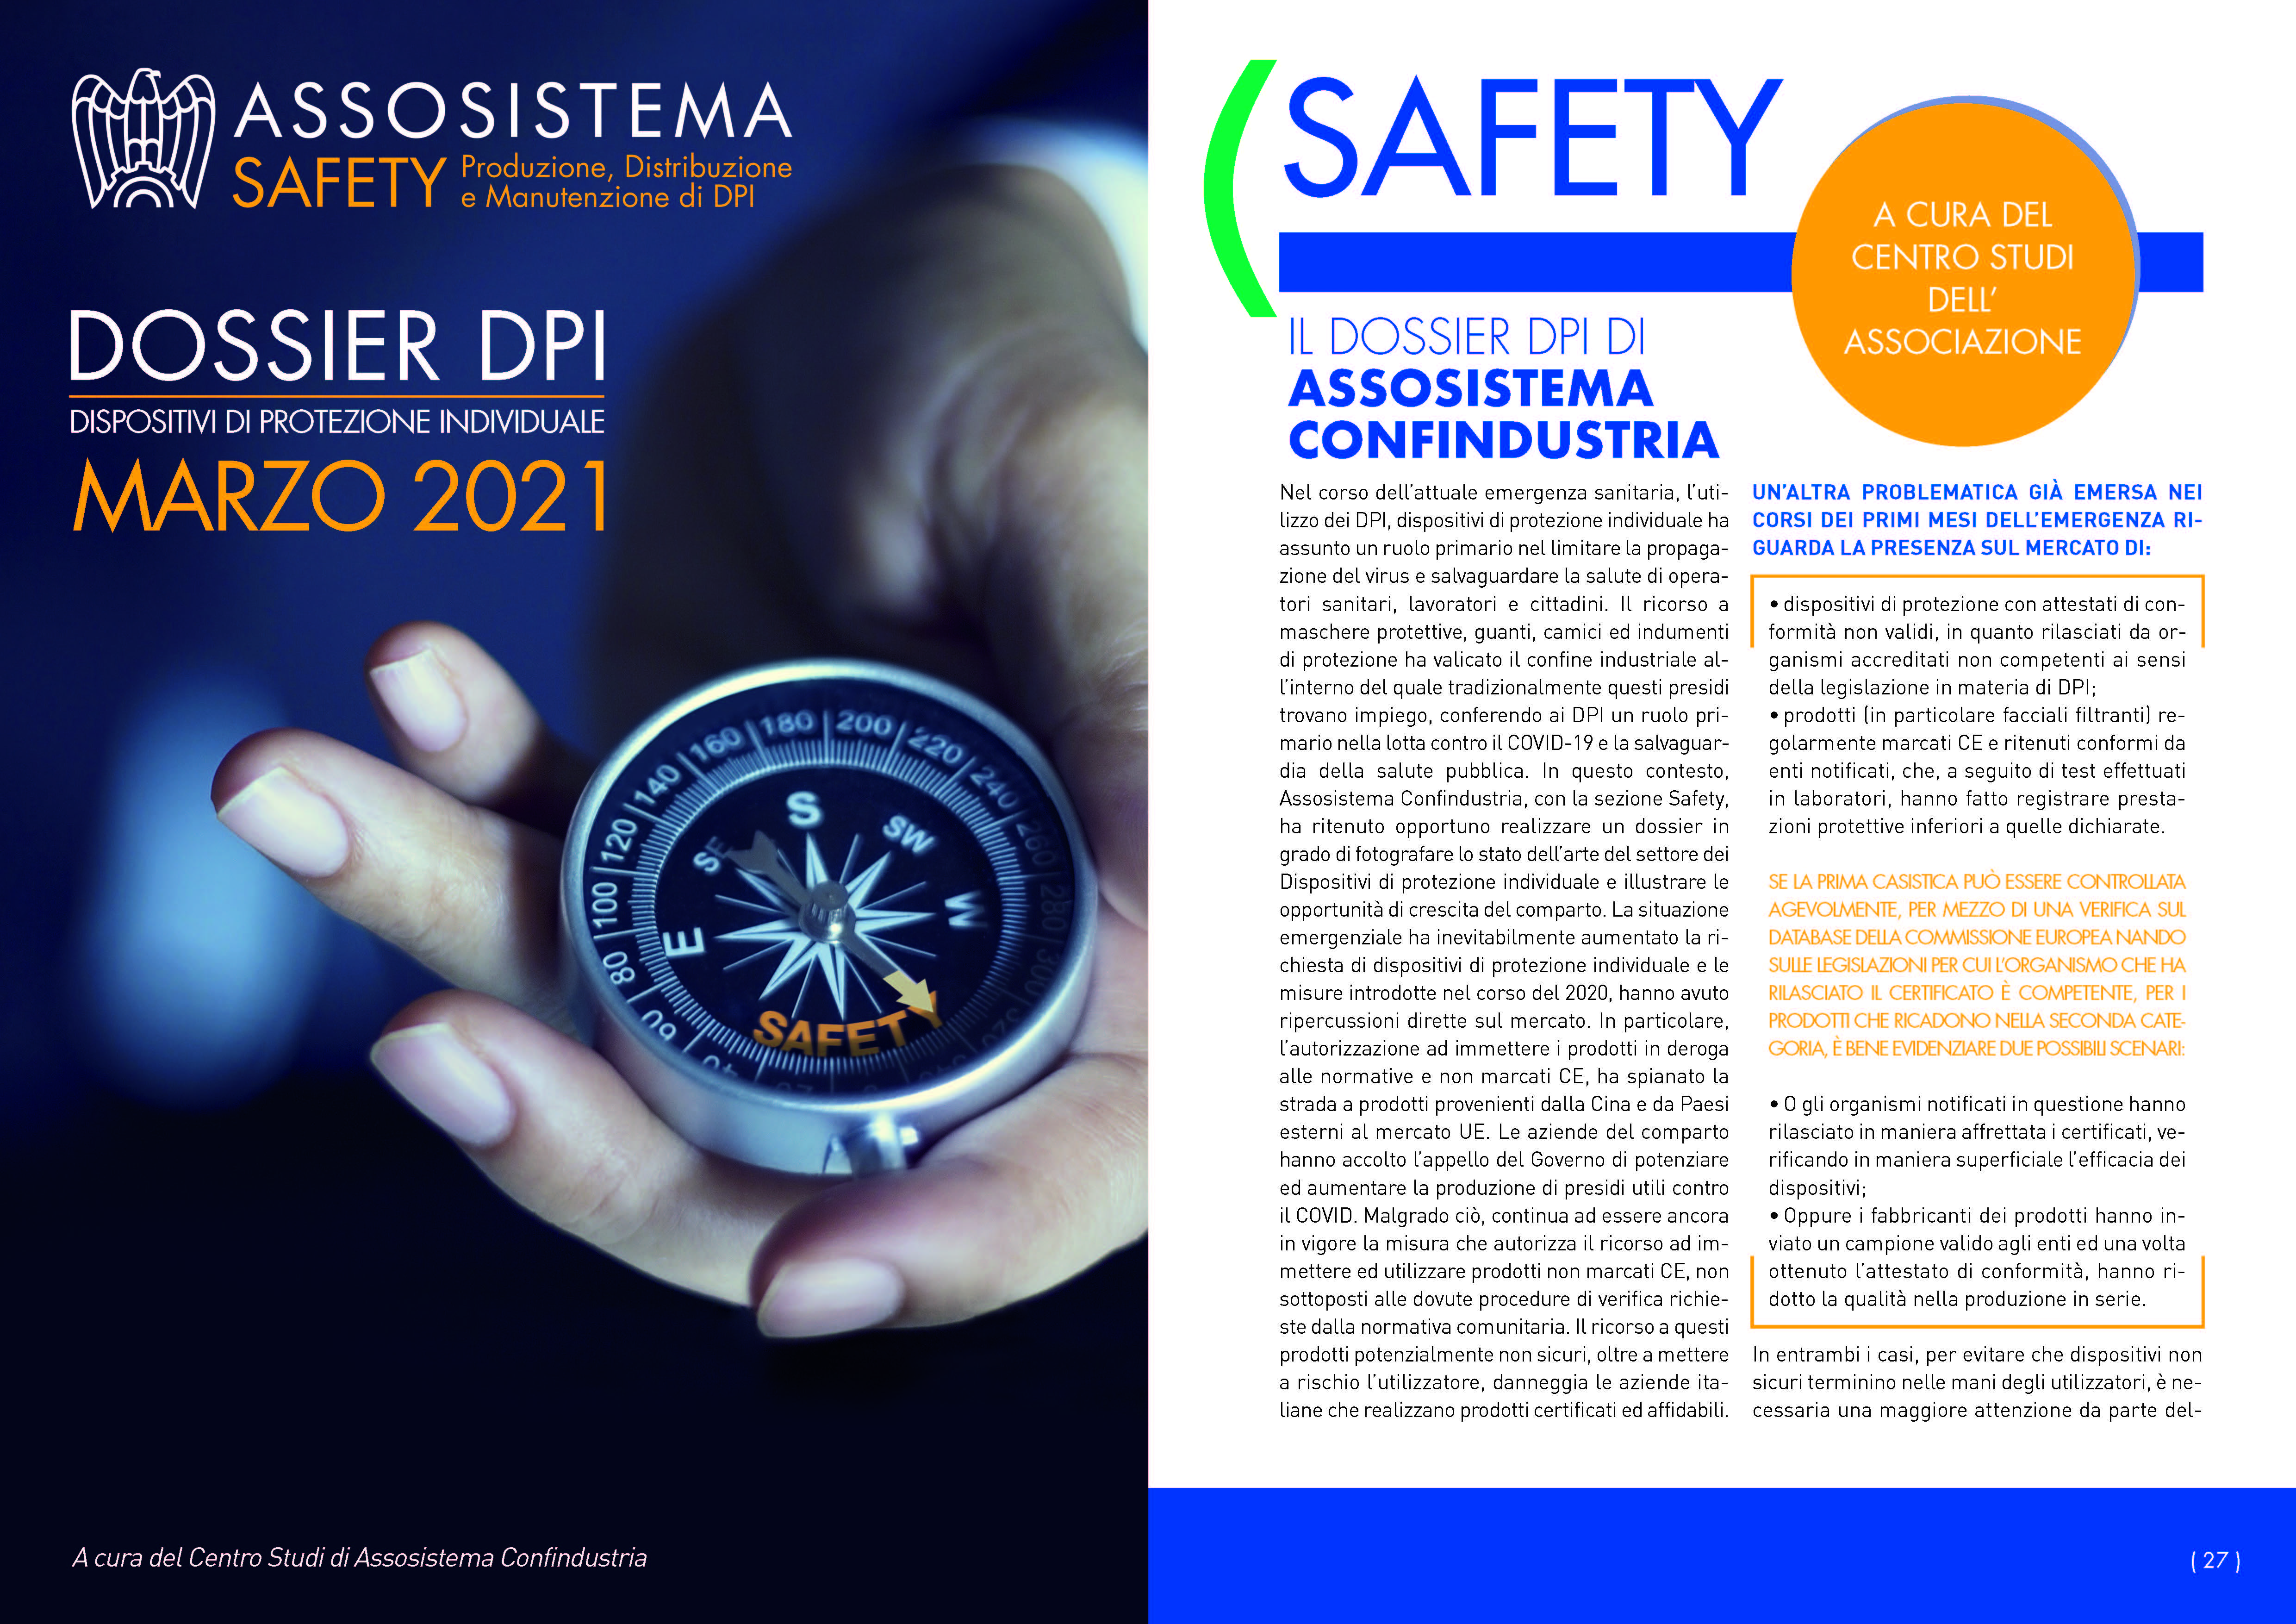 safety_pagg-26-28_pagina_1